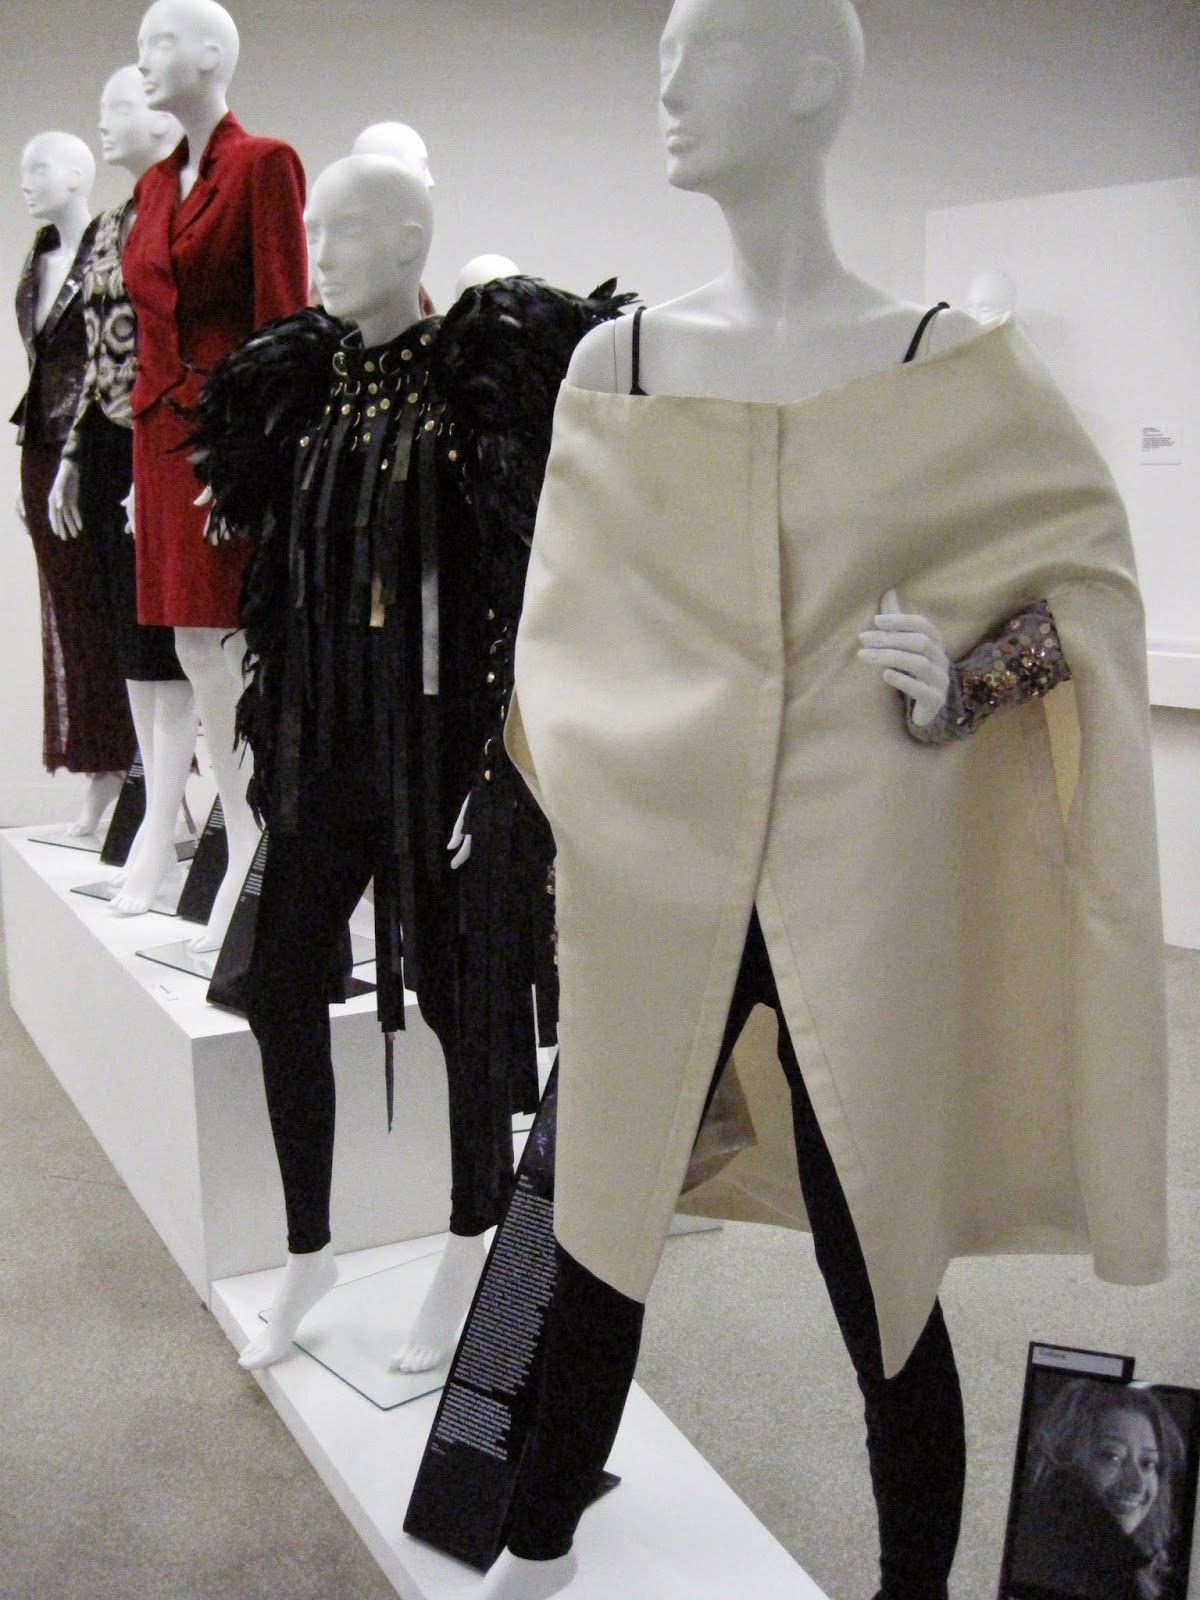 Women Fashion Power exhibition at the Design Museum